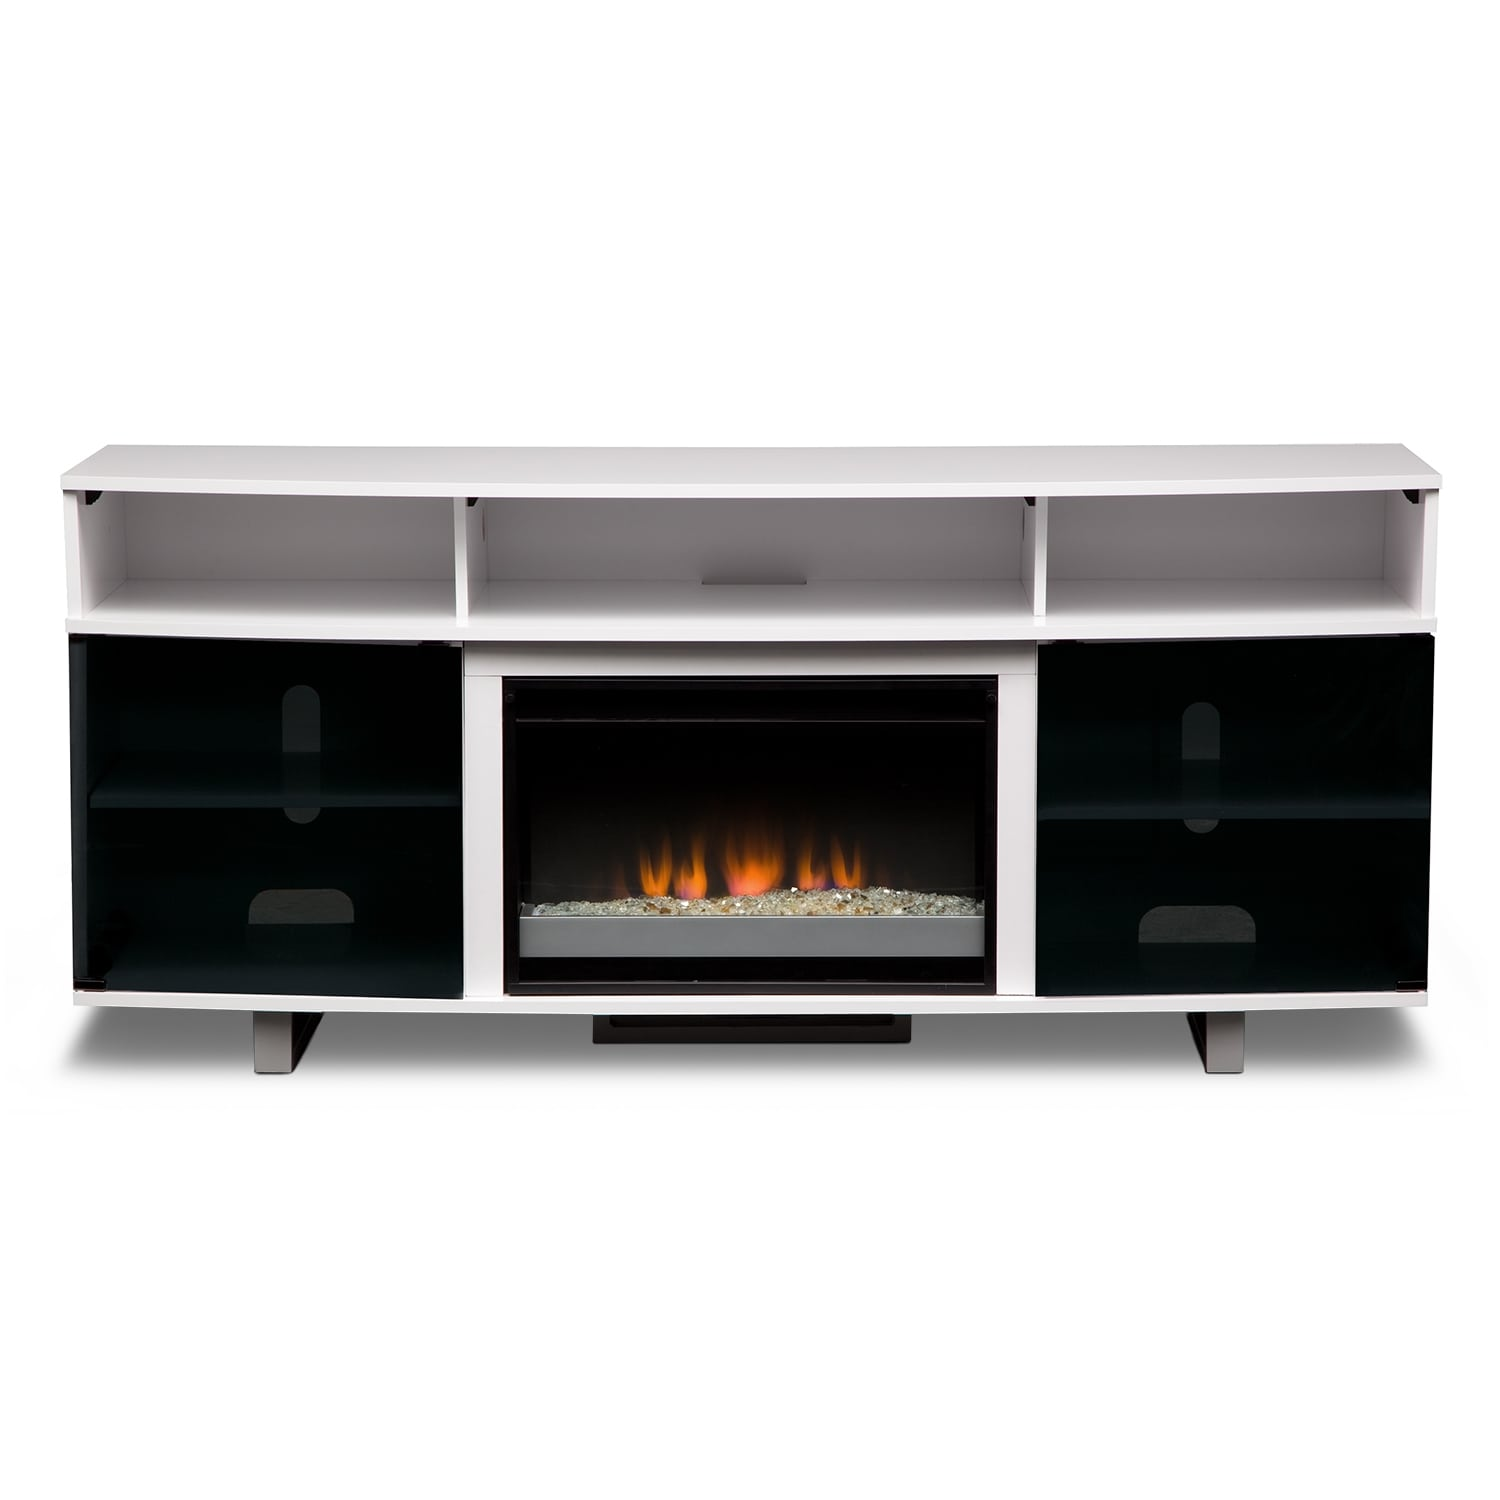 latest amazing fireplace uncategorized stylish collections within trends of stand white on with full size tv ideas electric sale